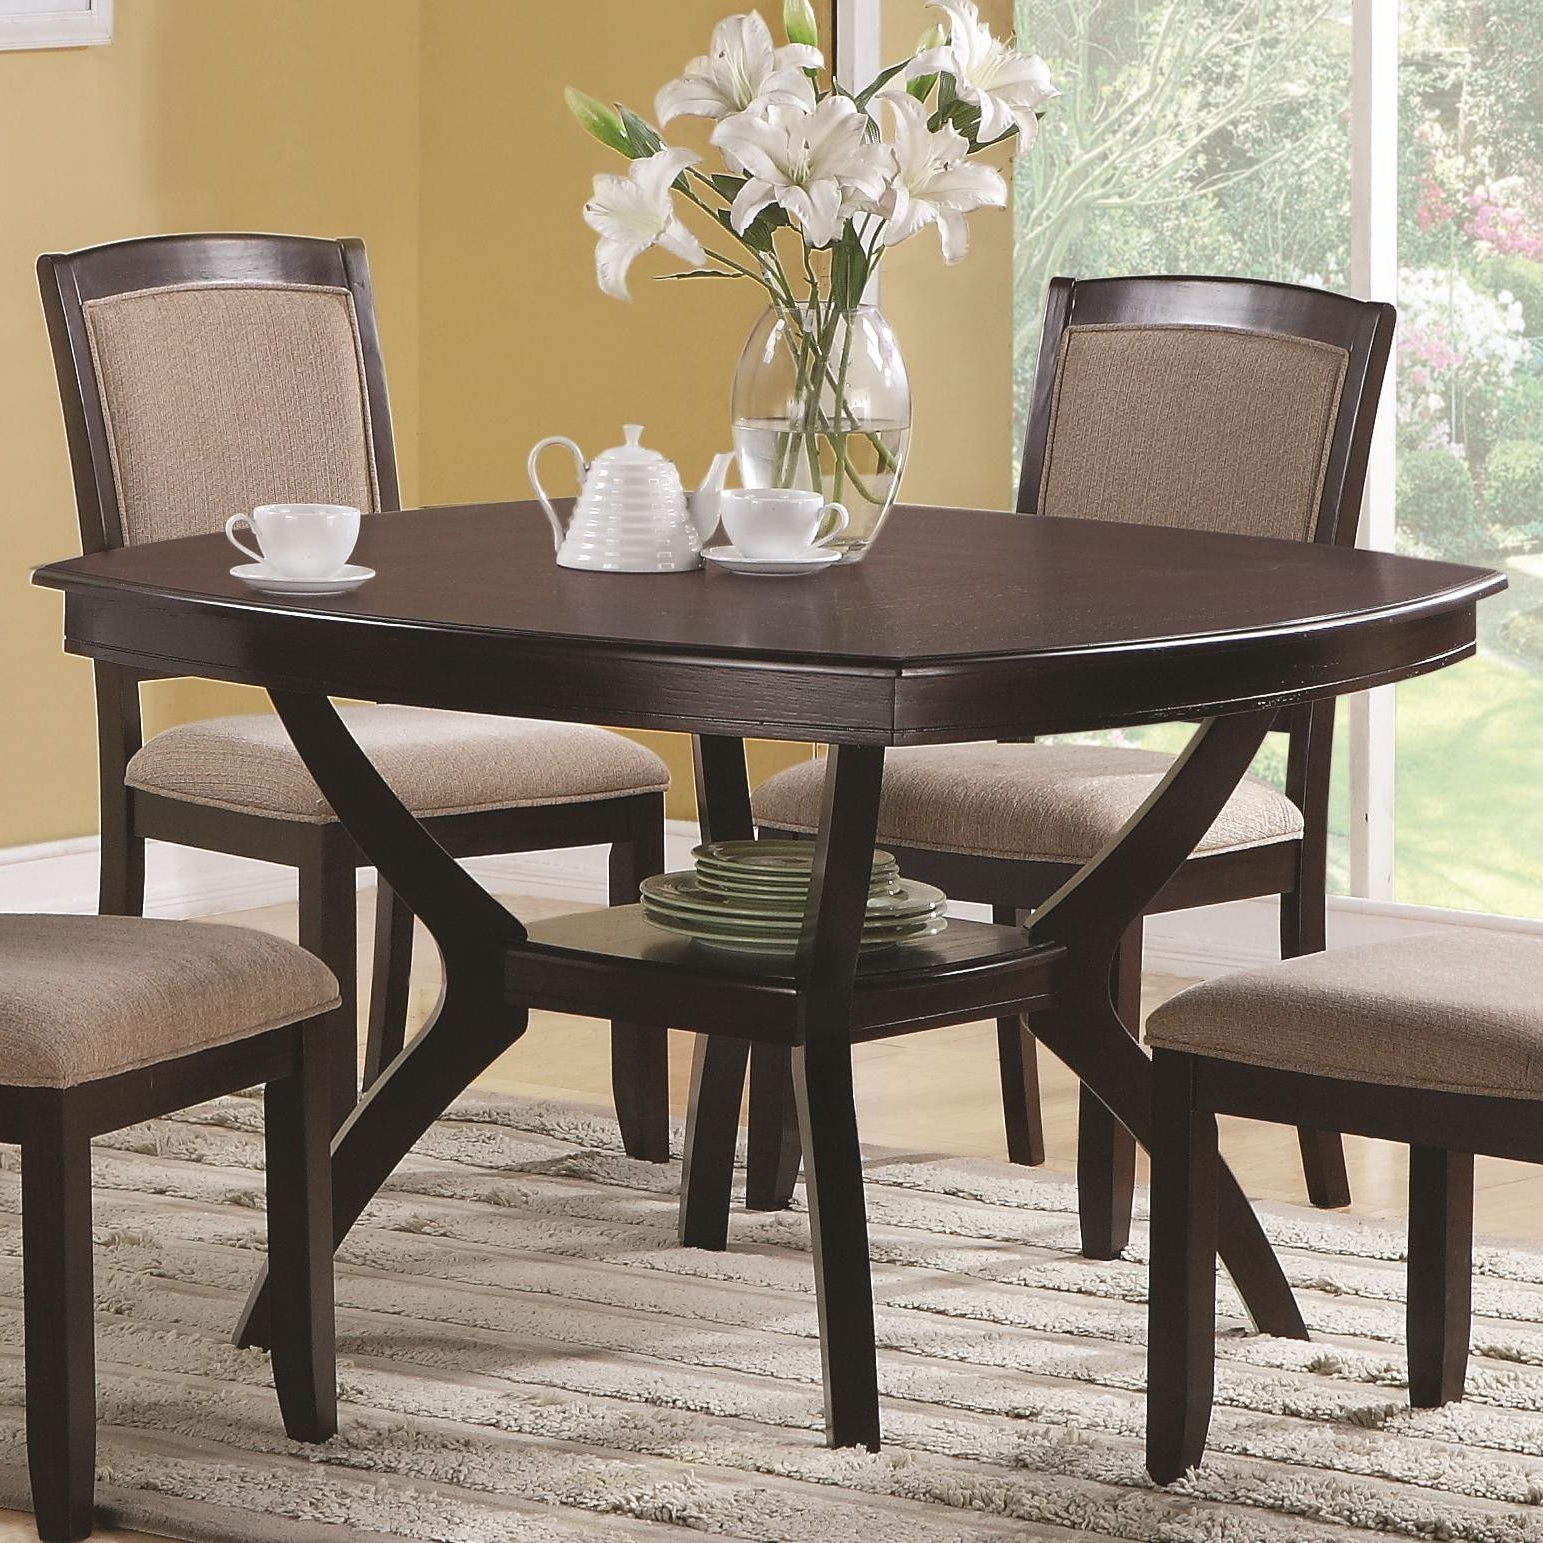 Casual Rounded Edge Square Dining Table Cappuccino Coaster Regarding Well Known Atwood Transitional Square Dining Tables (View 10 of 25)